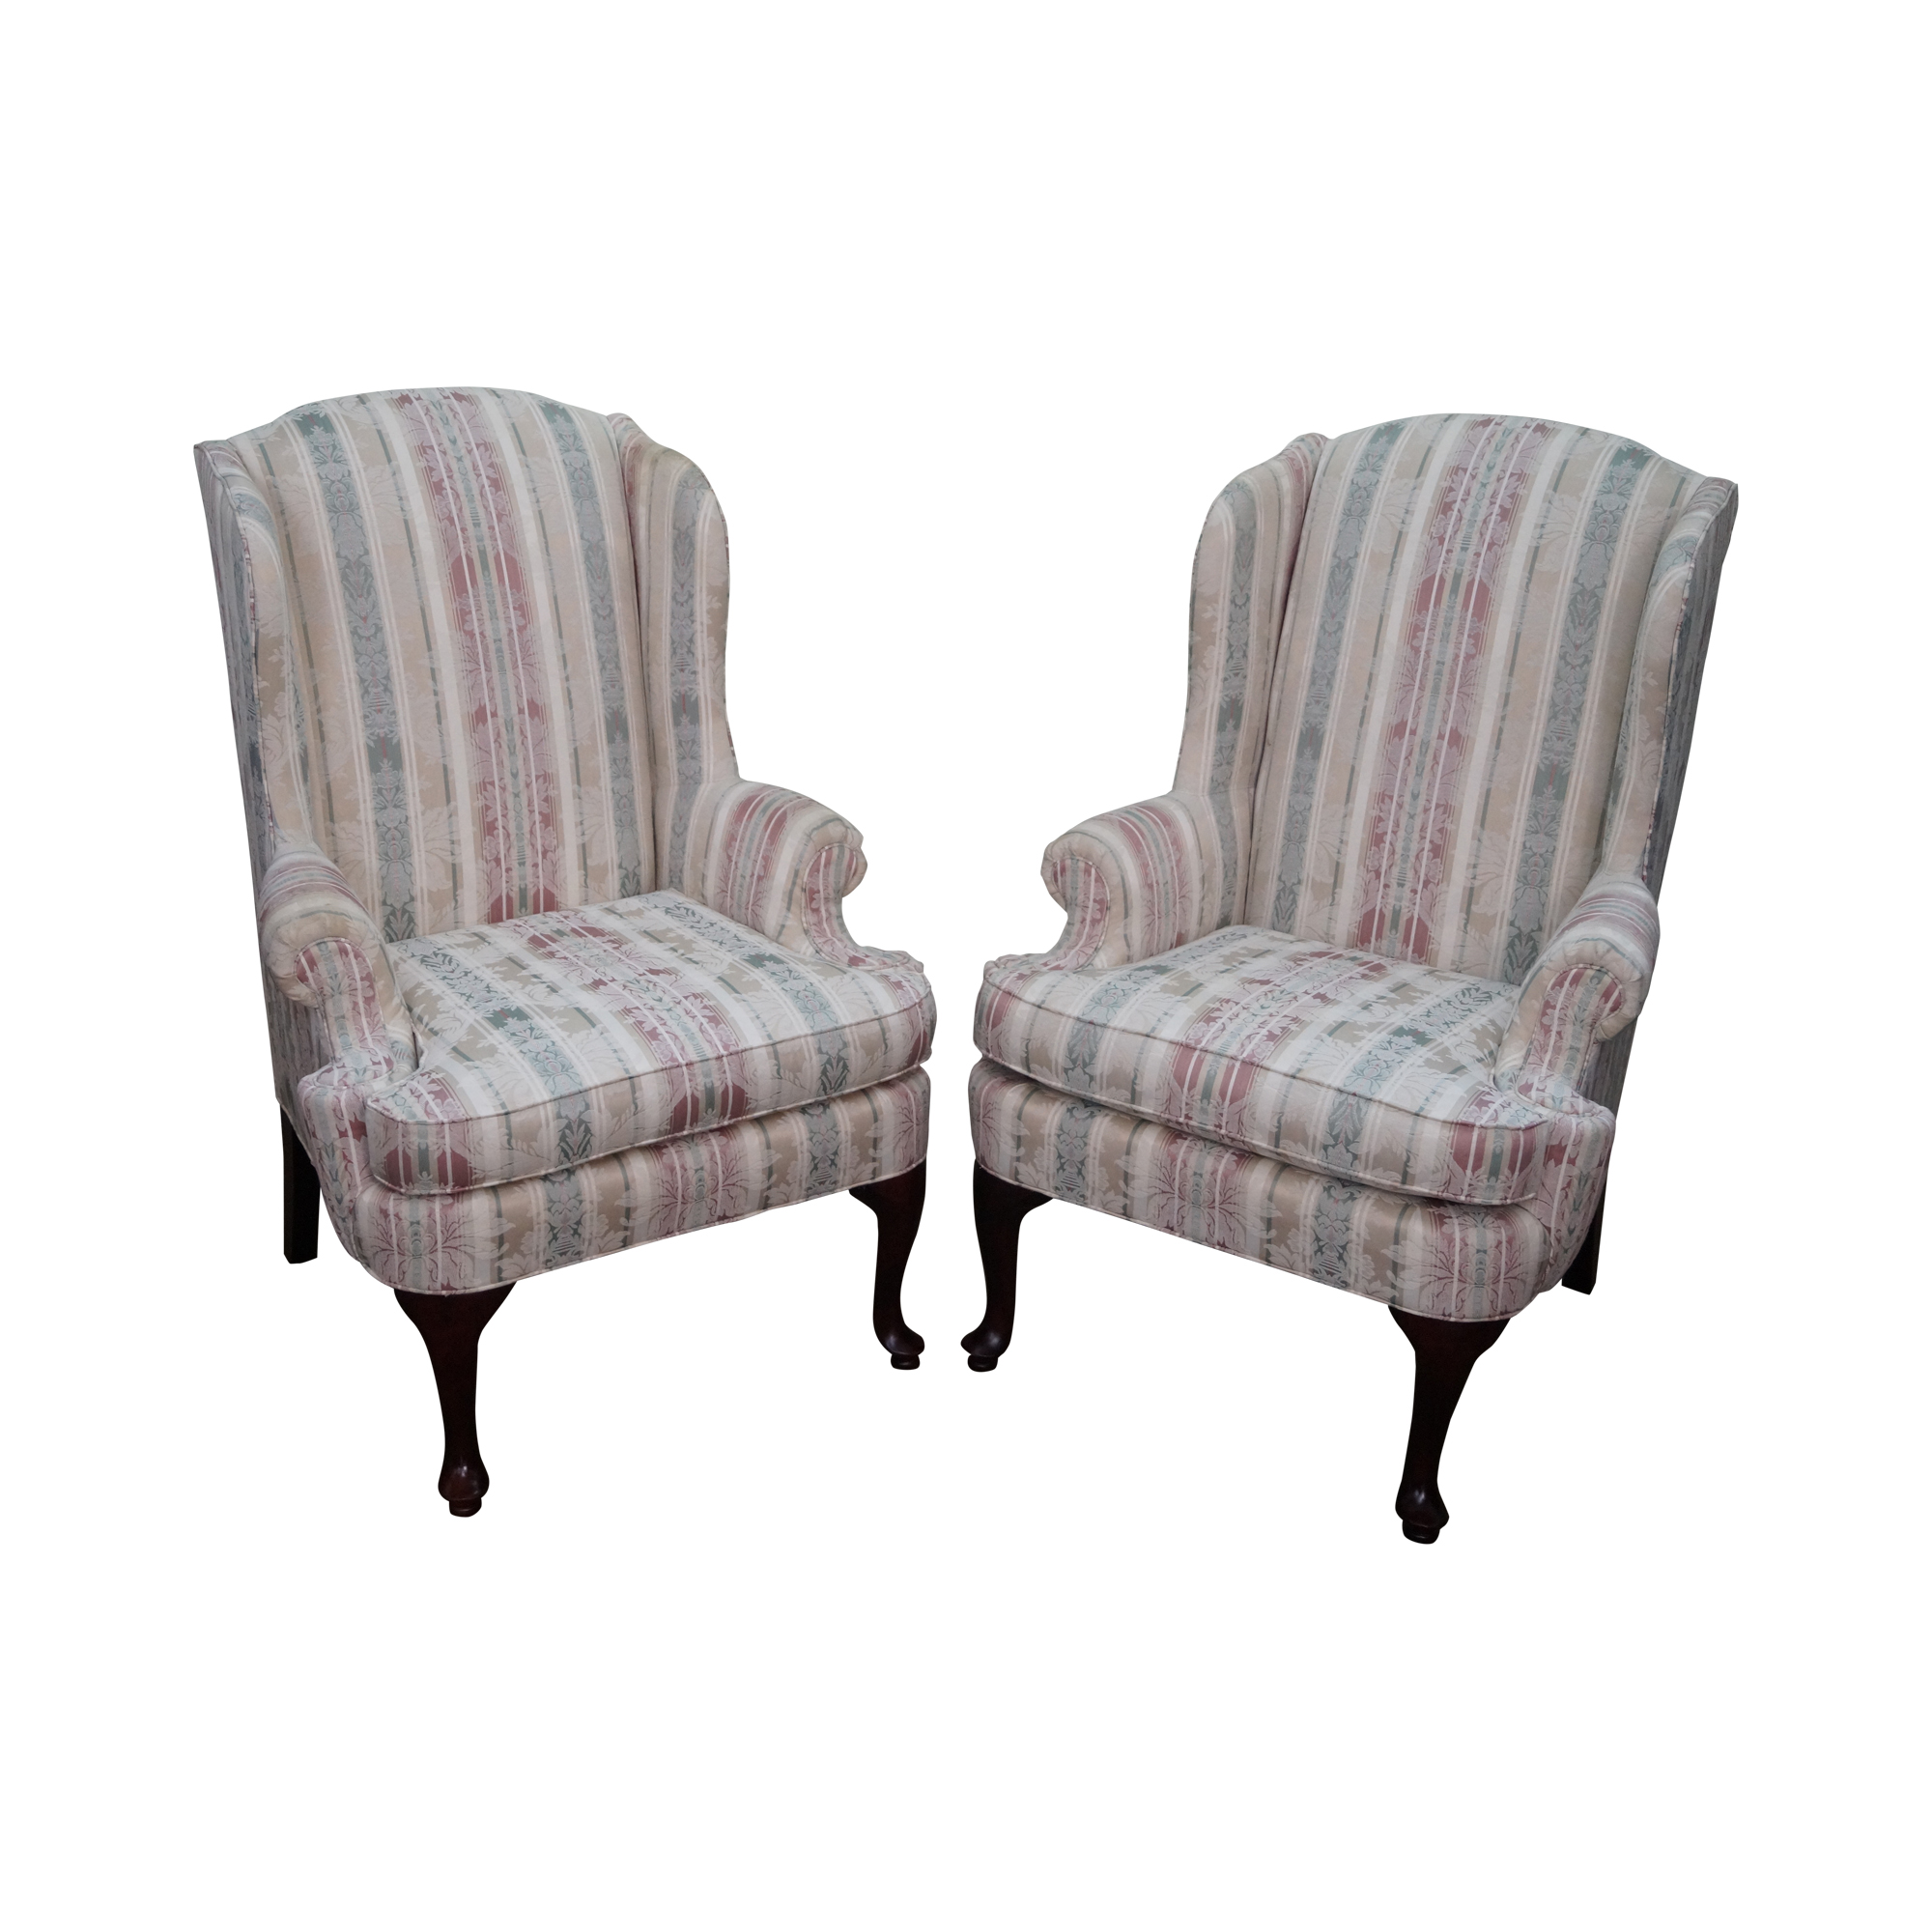 Thomasville Traditional Queen Anne Wing Chairs - 2 | Chairish